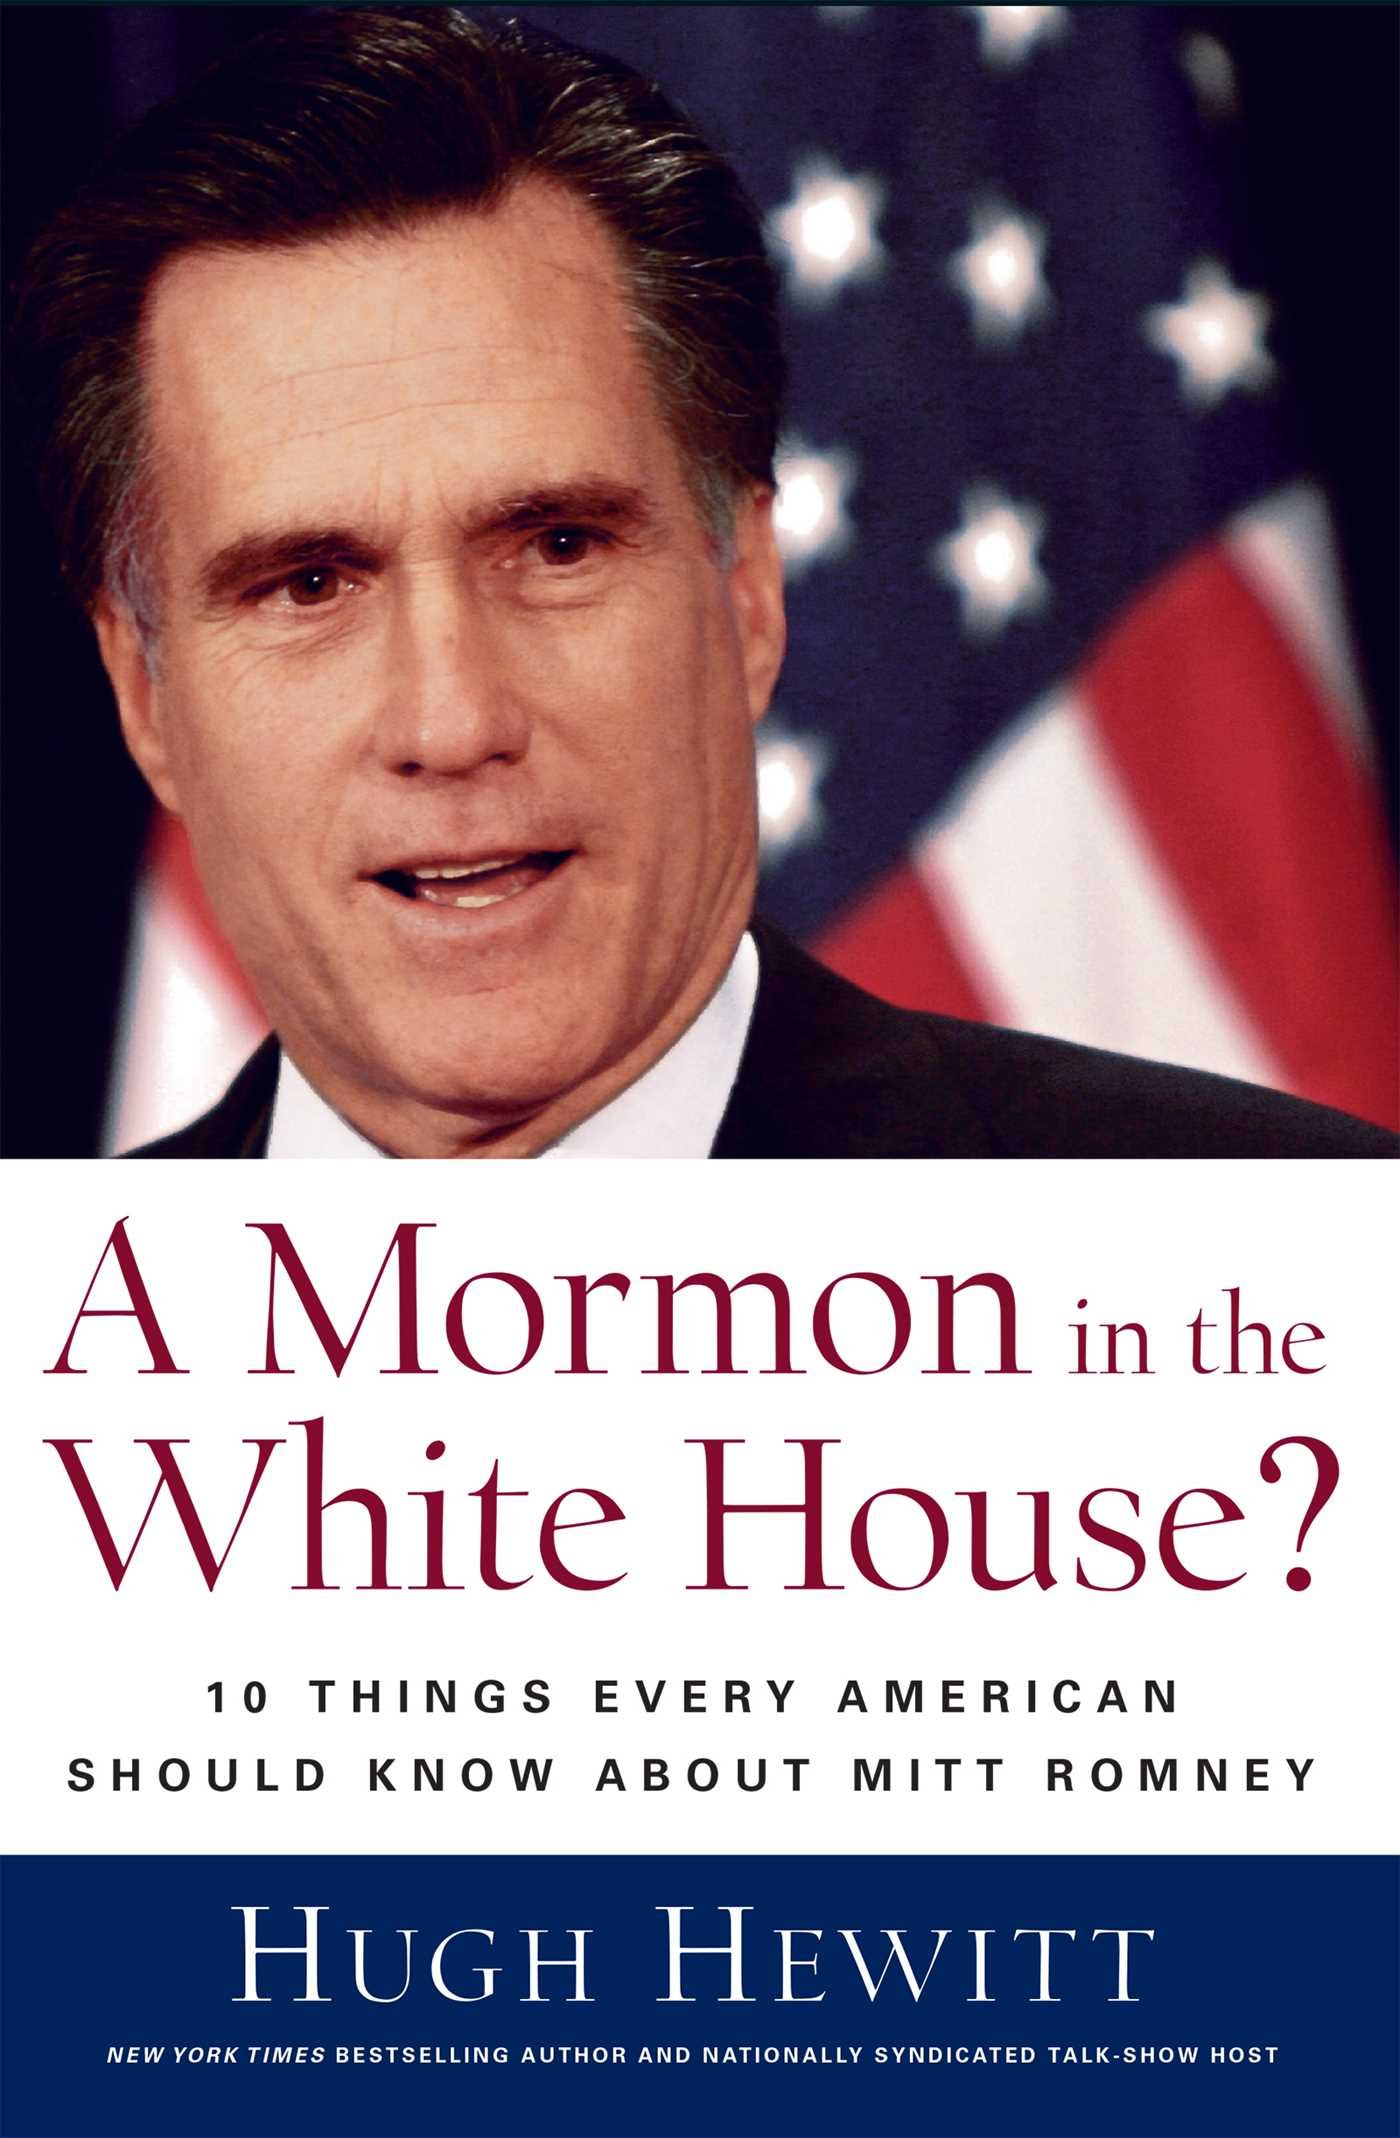 Mitt Romney, Mormonism, and the Media: Popular Depictions of a Religious Minority